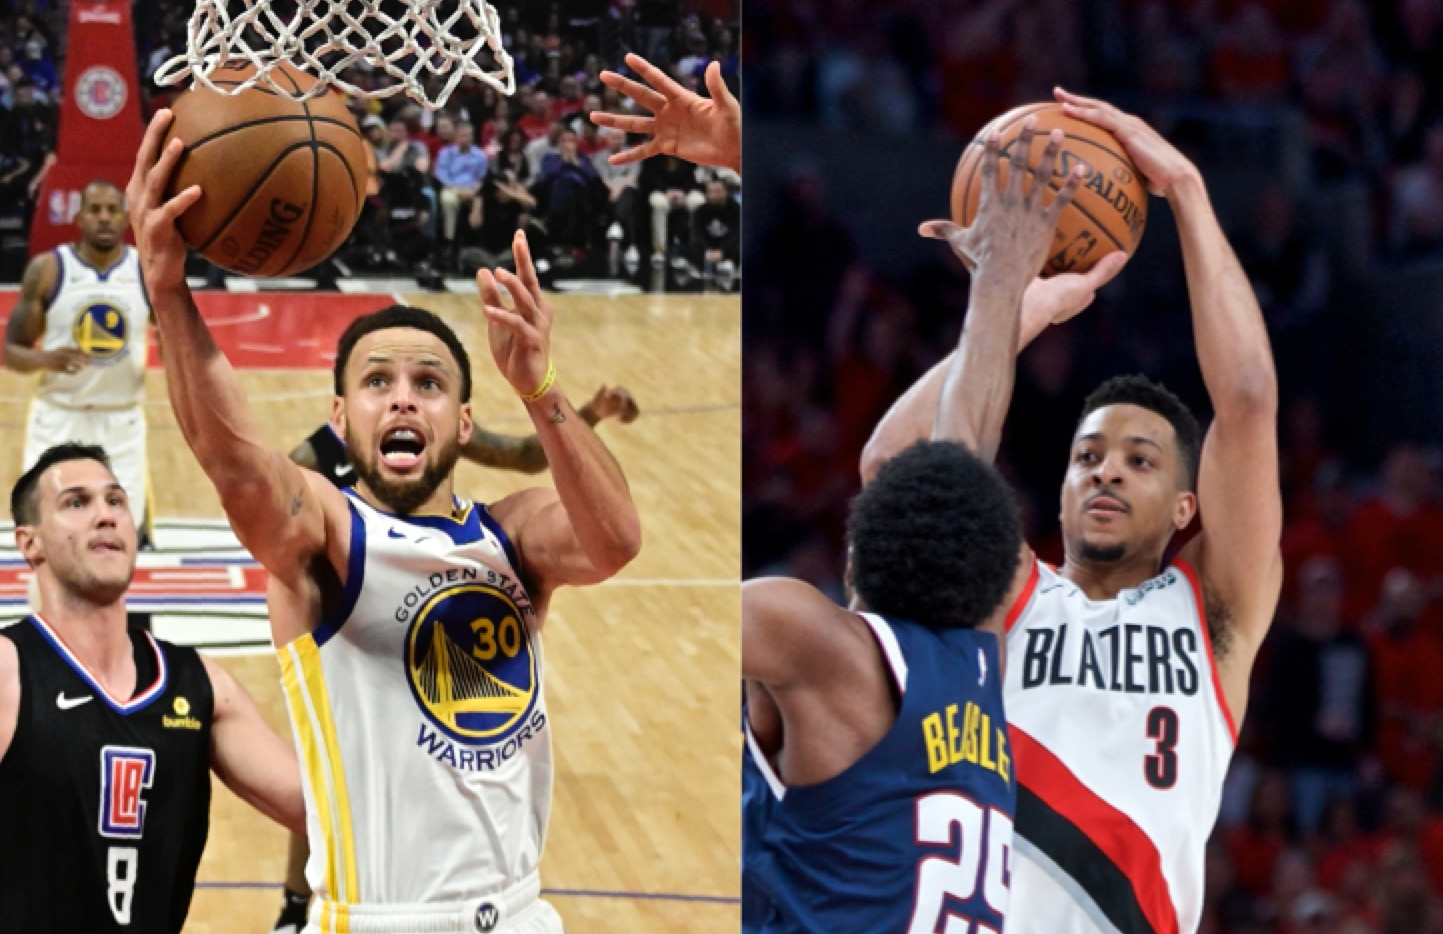 Stephen Curry de los Warriors de Golden State y CJ McCollum de los Blazers de Portland. AP